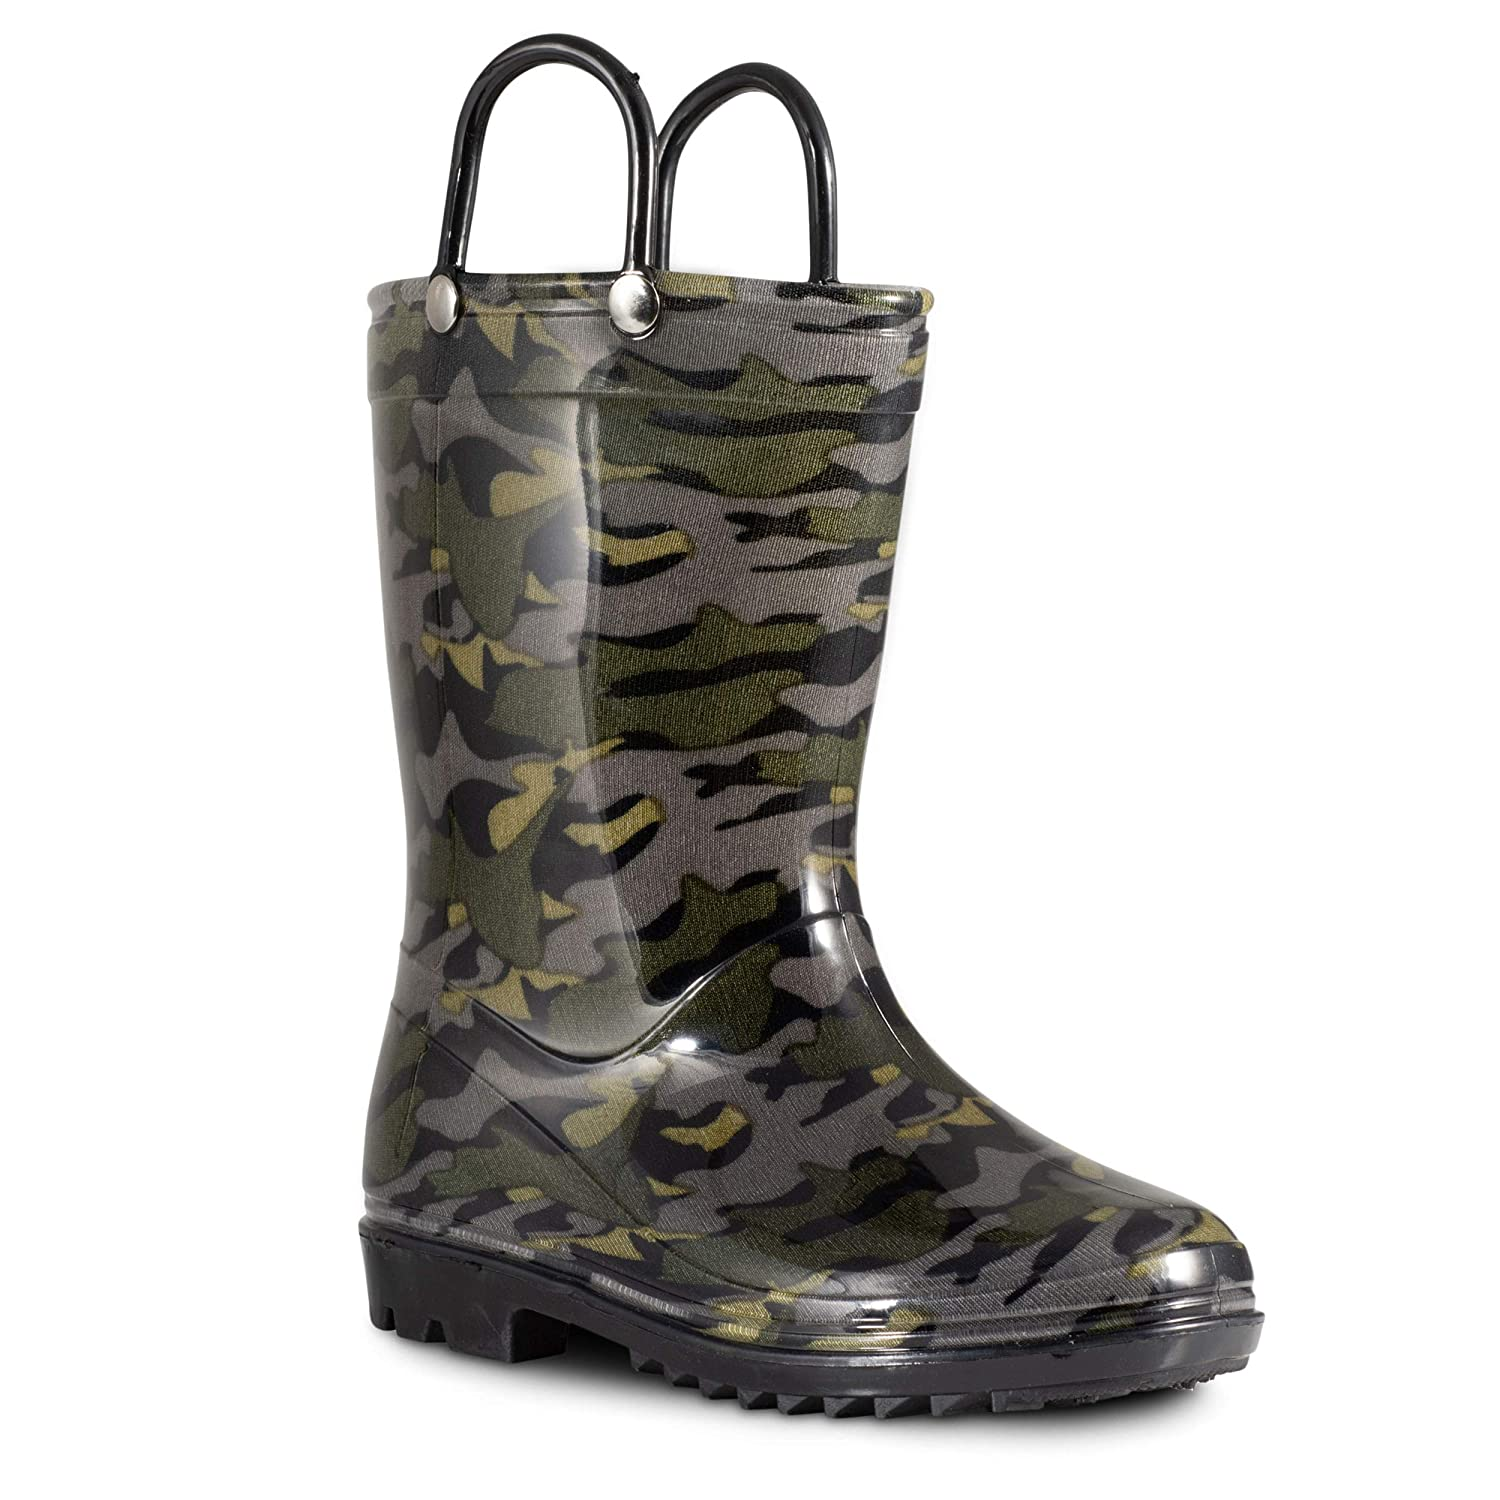 ZOOGS Camo Print Kids Rain Boots for Toddlers, Big Girls and Boys Rain Boots